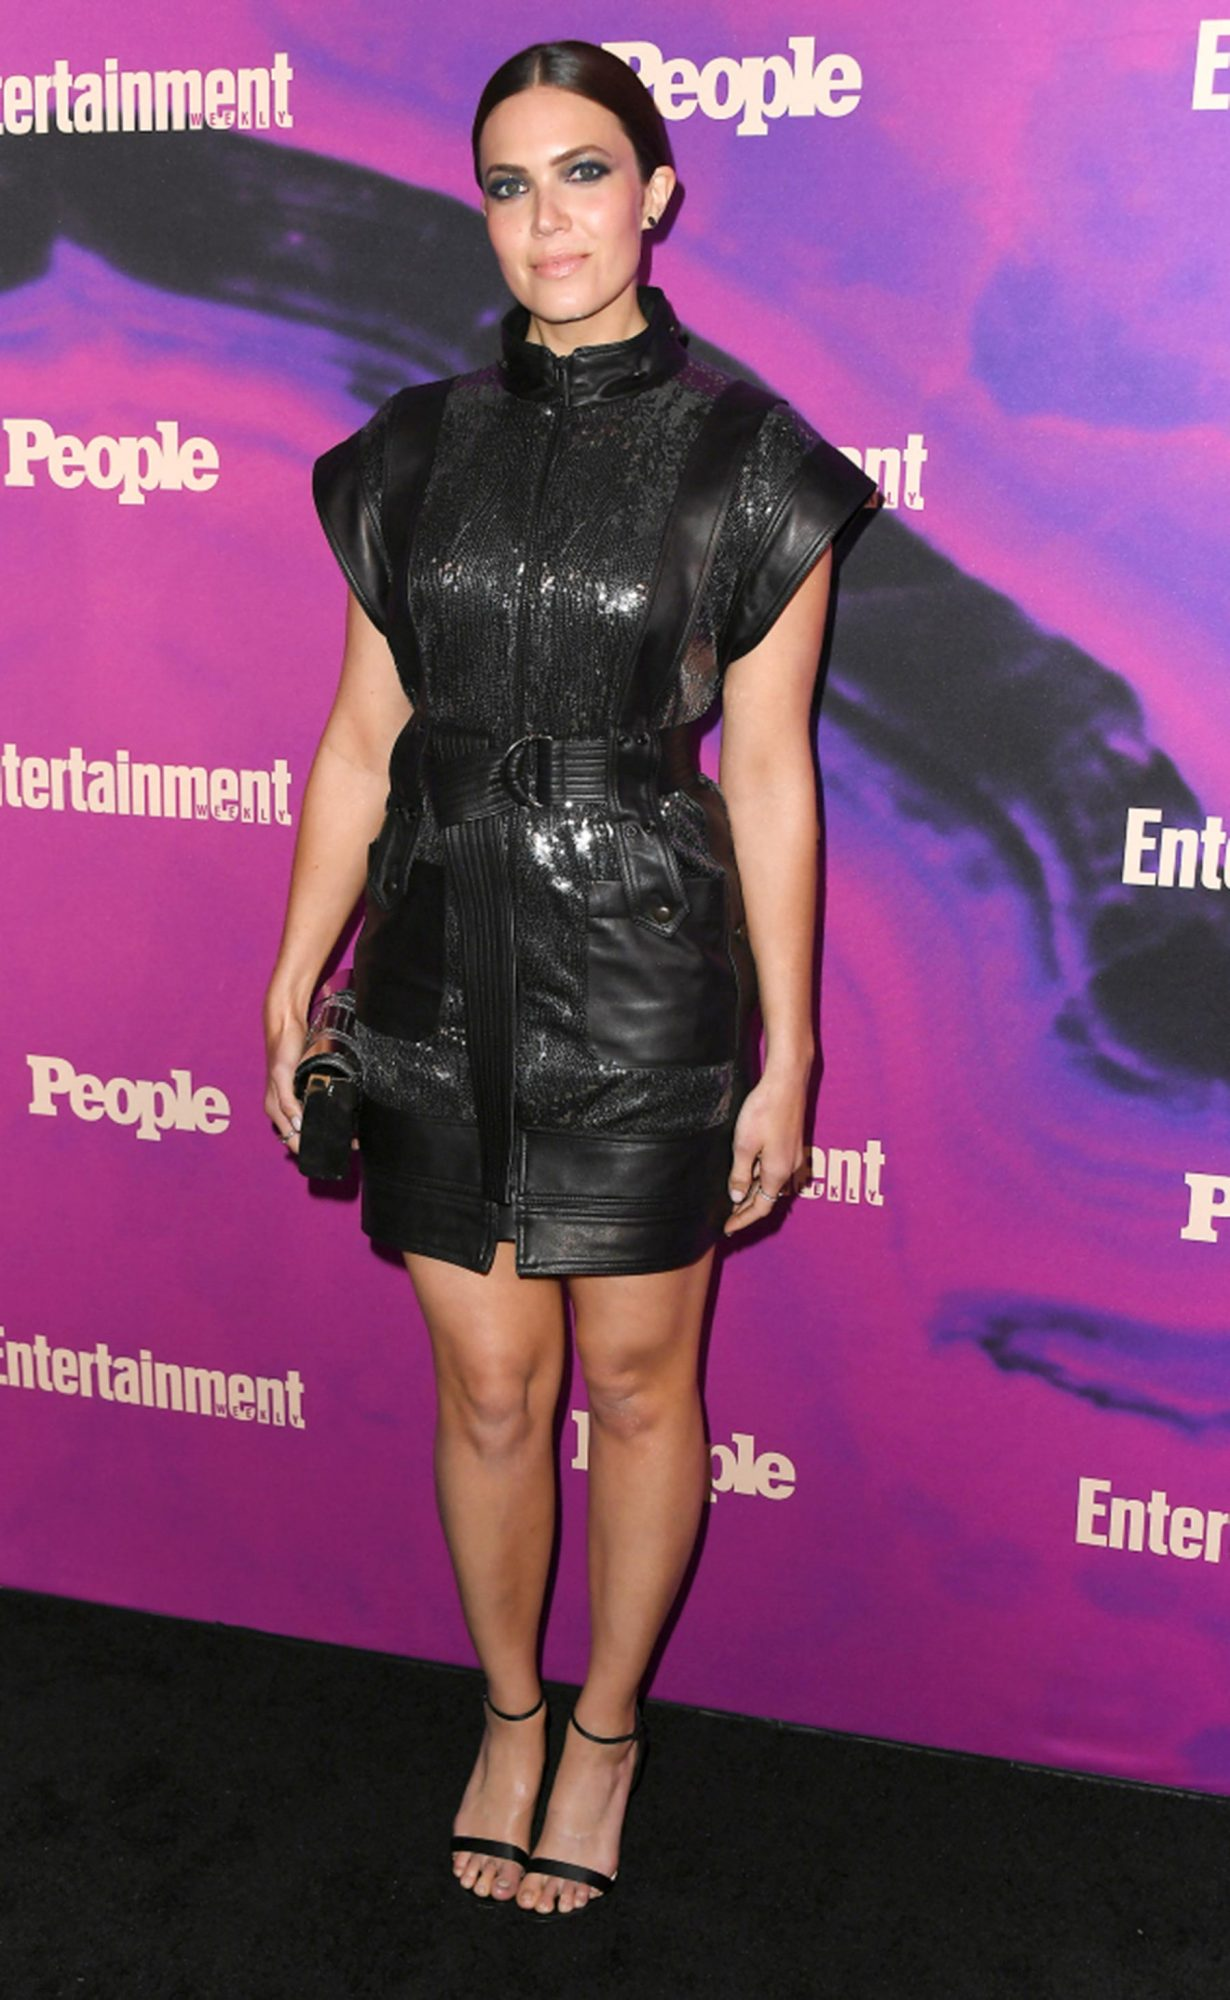 NEW YORK, NEW YORK - MAY 13: Mandy Moore attends the People & Entertainment Weekly 2019 Upfronts at Union Park on May 13, 2019 in New York City. (Photo by Nicholas Hunt/Getty Images)